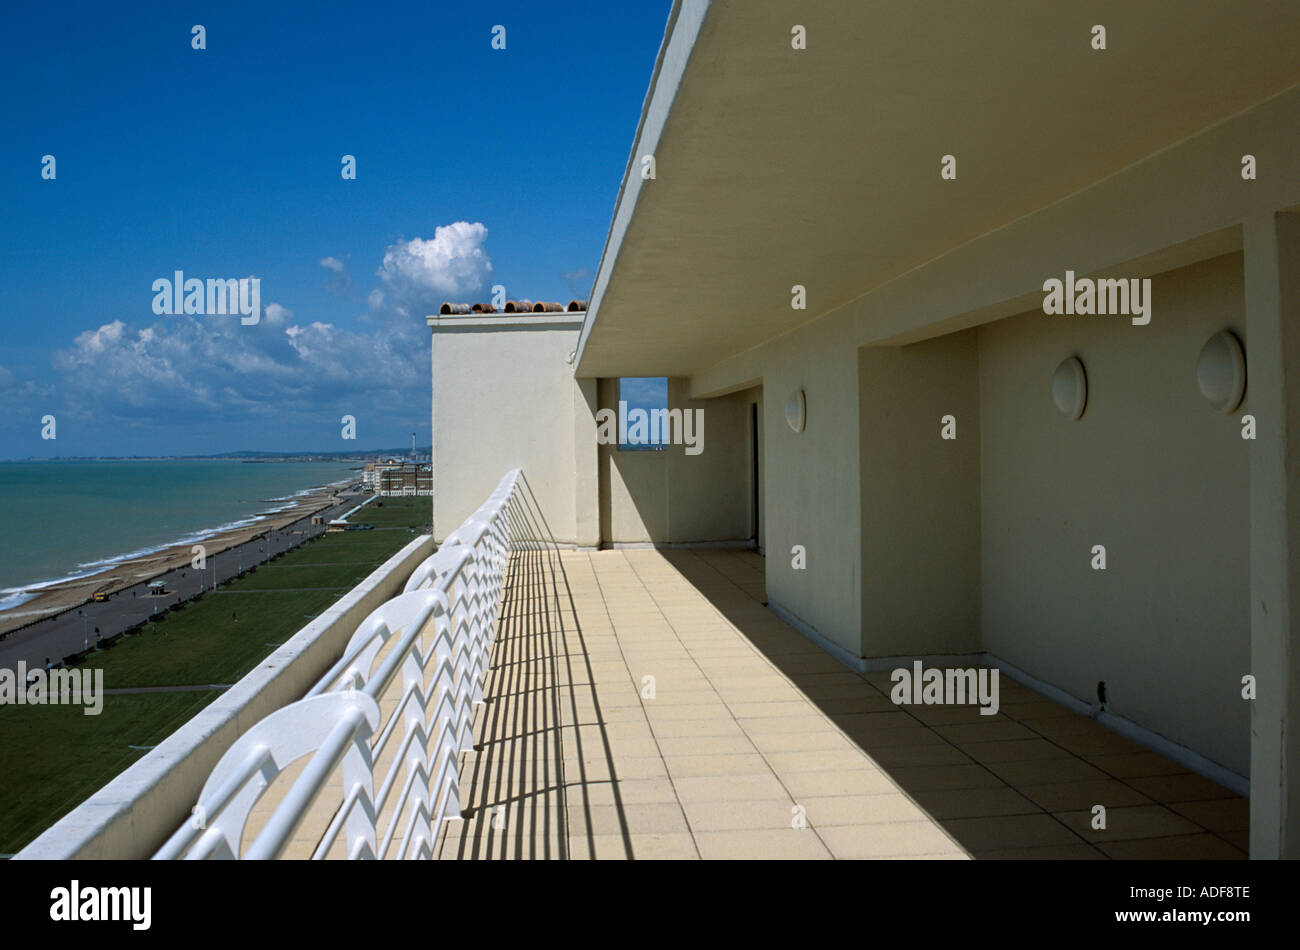 A view along the sun terrace of Embassy Court, Brighton, East Sussex looking towards the Hove seafront. - Stock Image